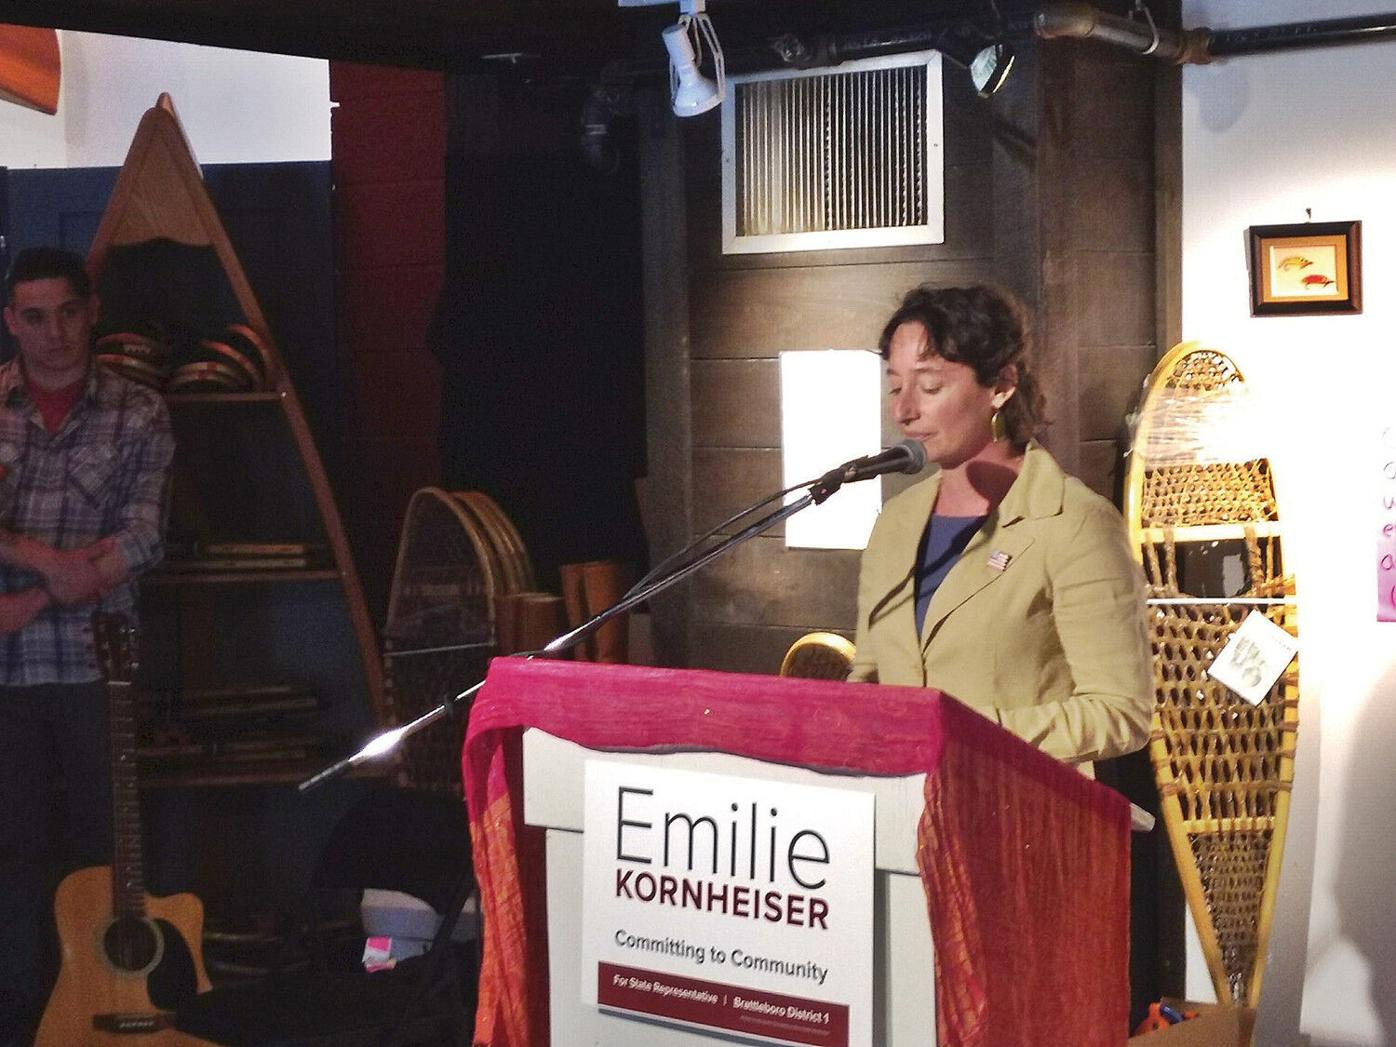 Emilie Kornheiser hoping to build a better community